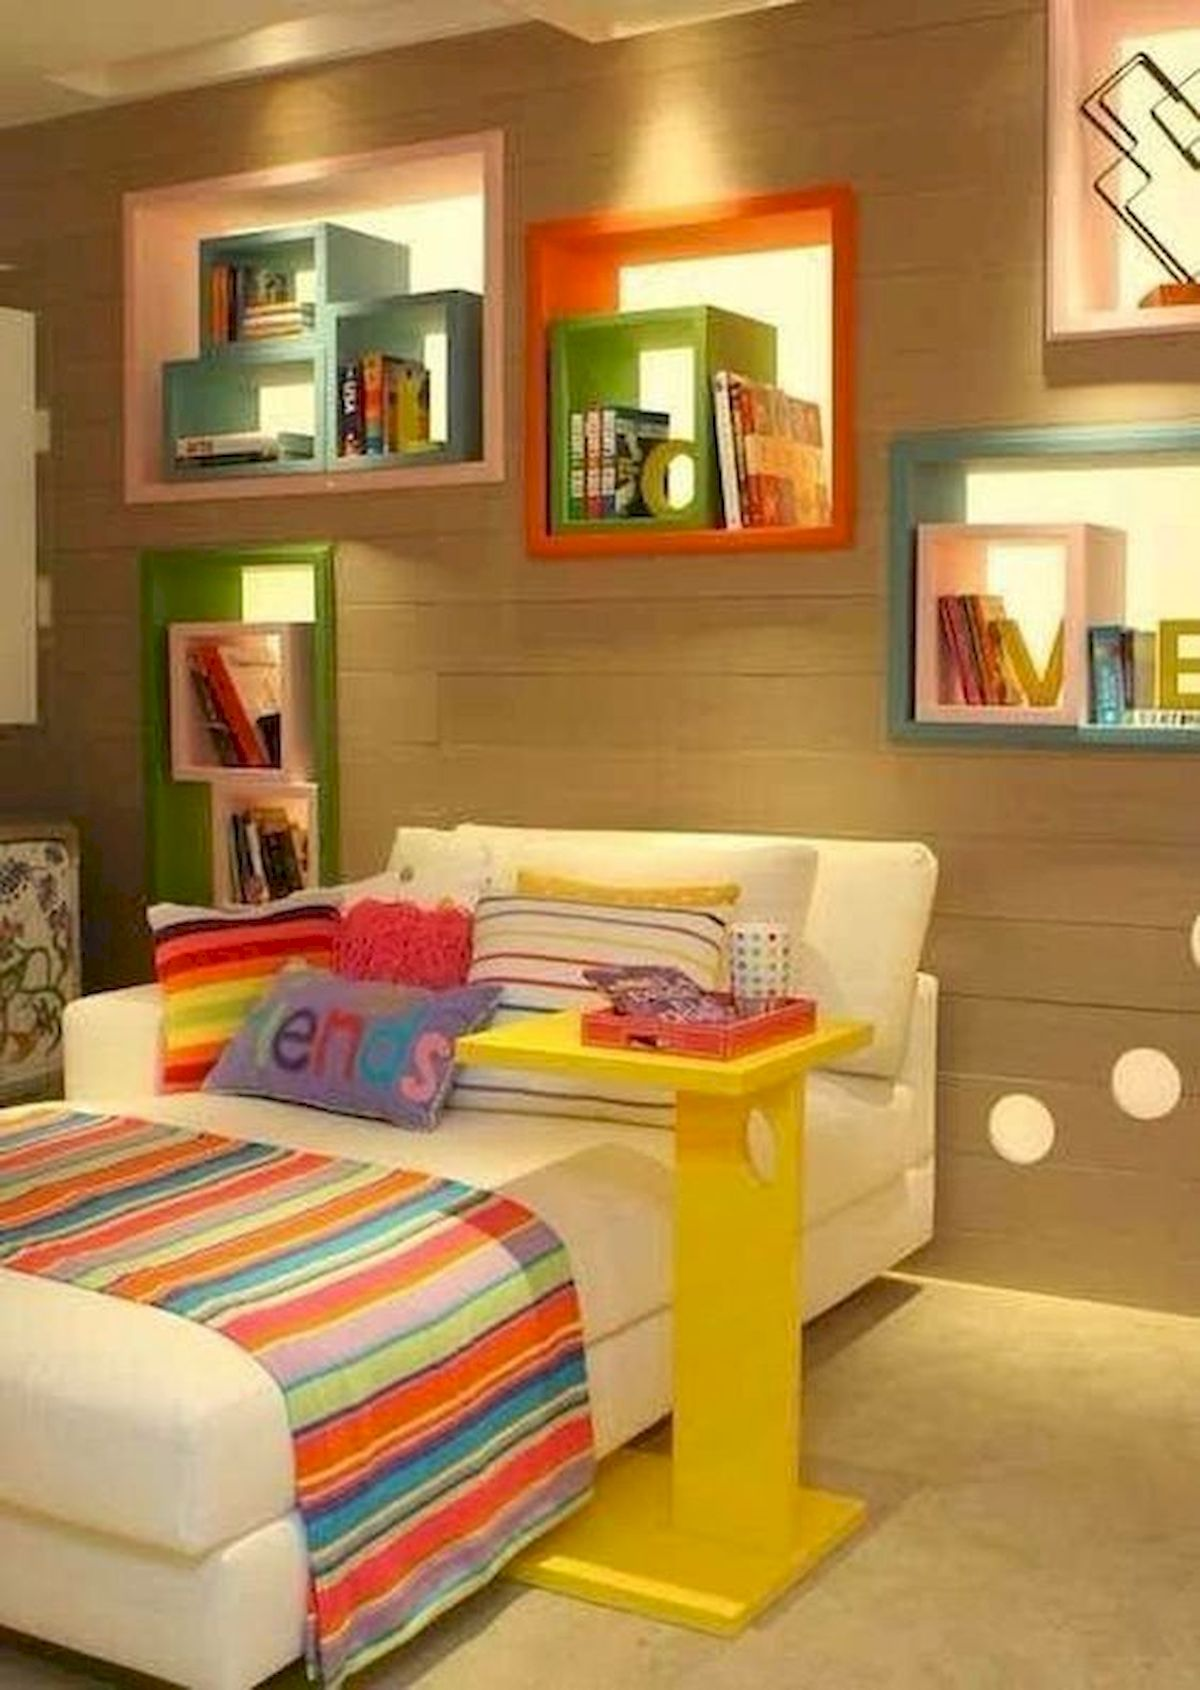 70 Awesome Colorful Bedroom Design Ideas and Remodel (67)